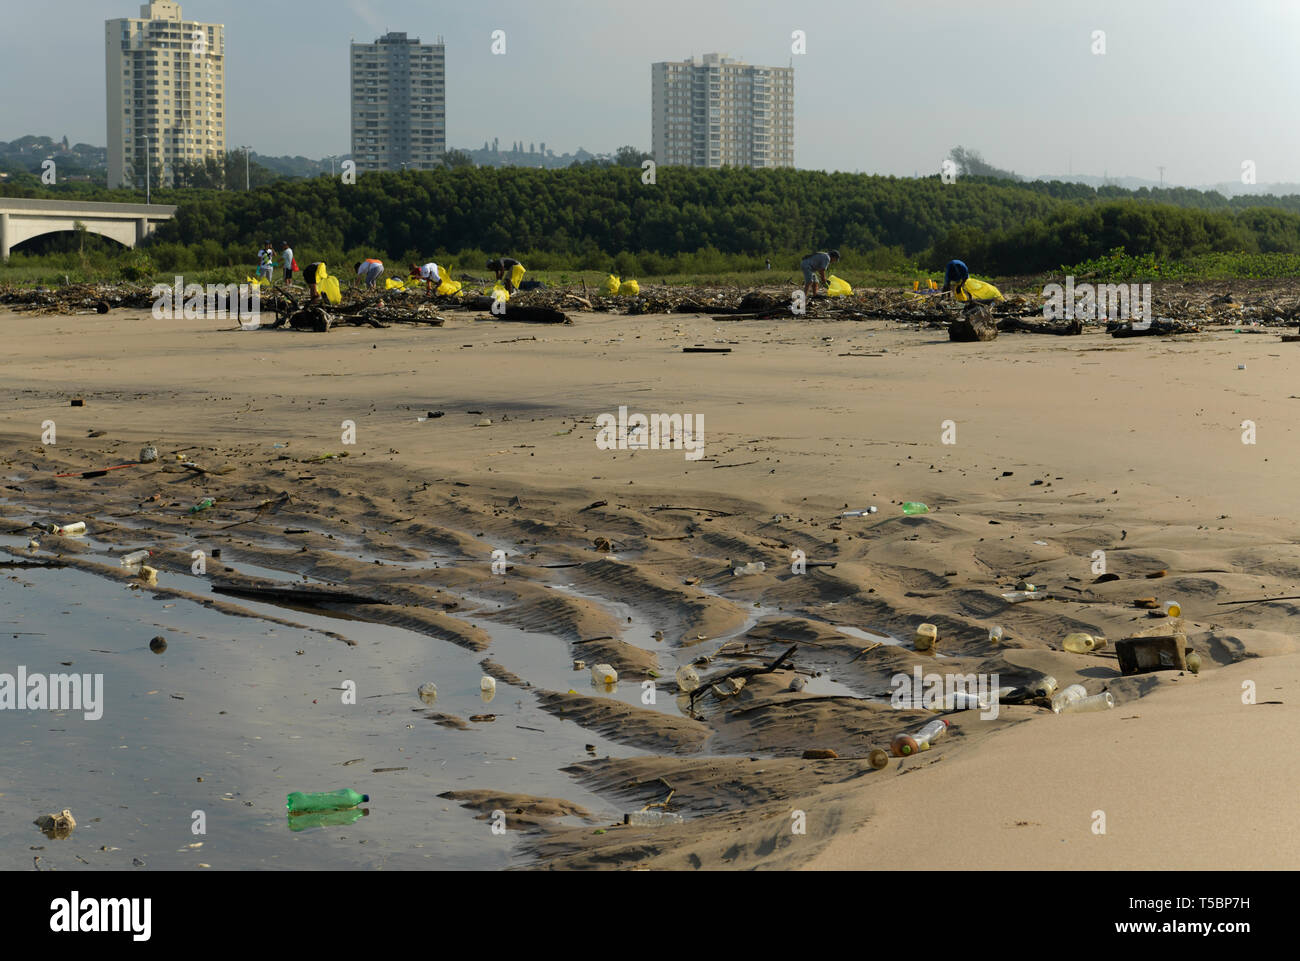 Durban, KwaZulu-Natal, South Africa, plastic pollution, citizen volunteers picking up packaging from beach at high tide mark, Umgeni river mouth, city - Stock Image